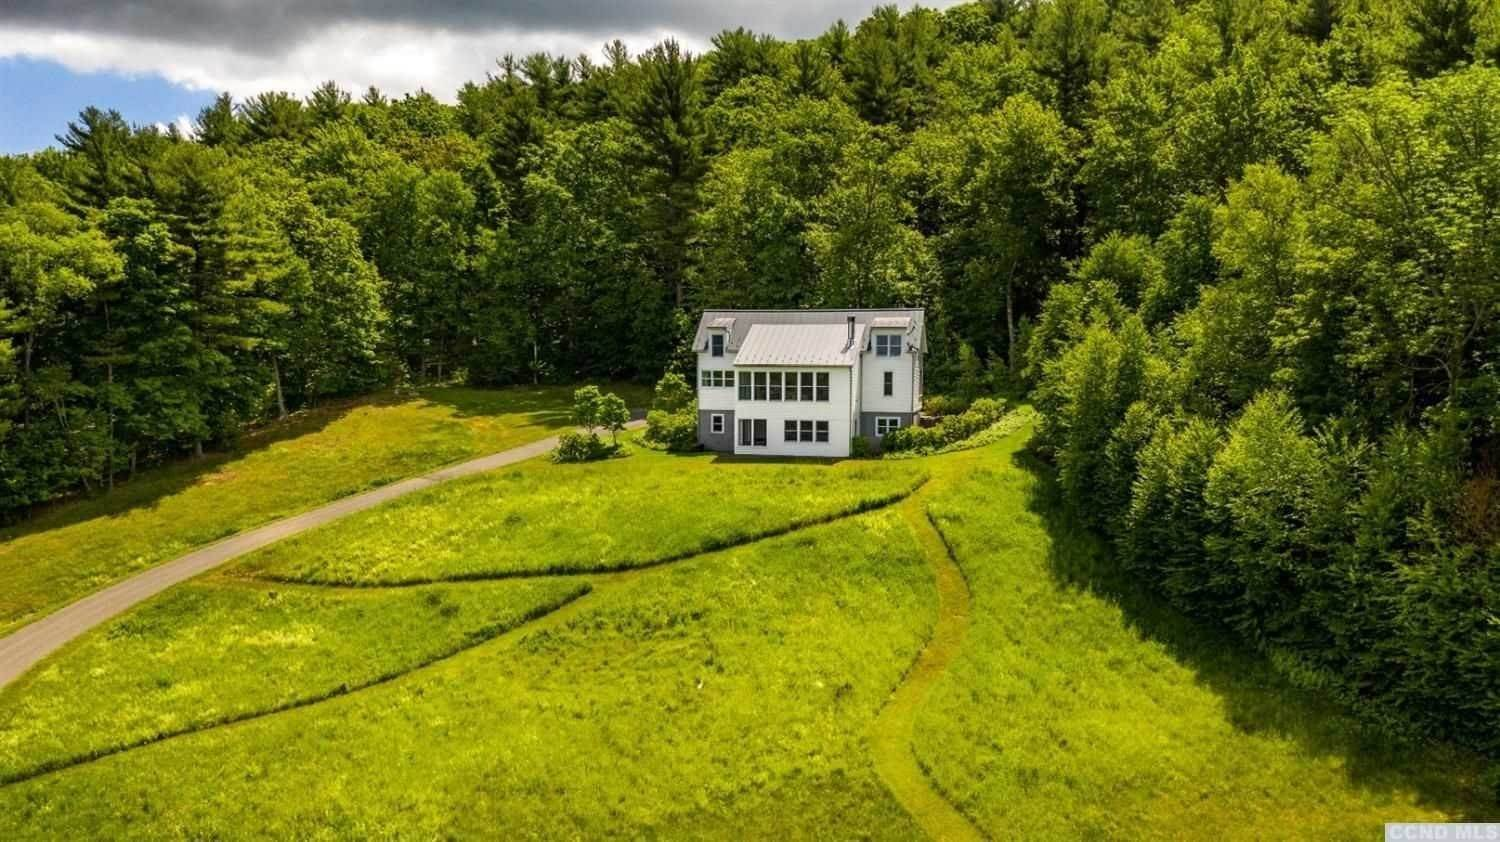 Single Family Homes pour l Vente à 564 SCENIC HWY Austerlitz, New York 12017 États-Unis